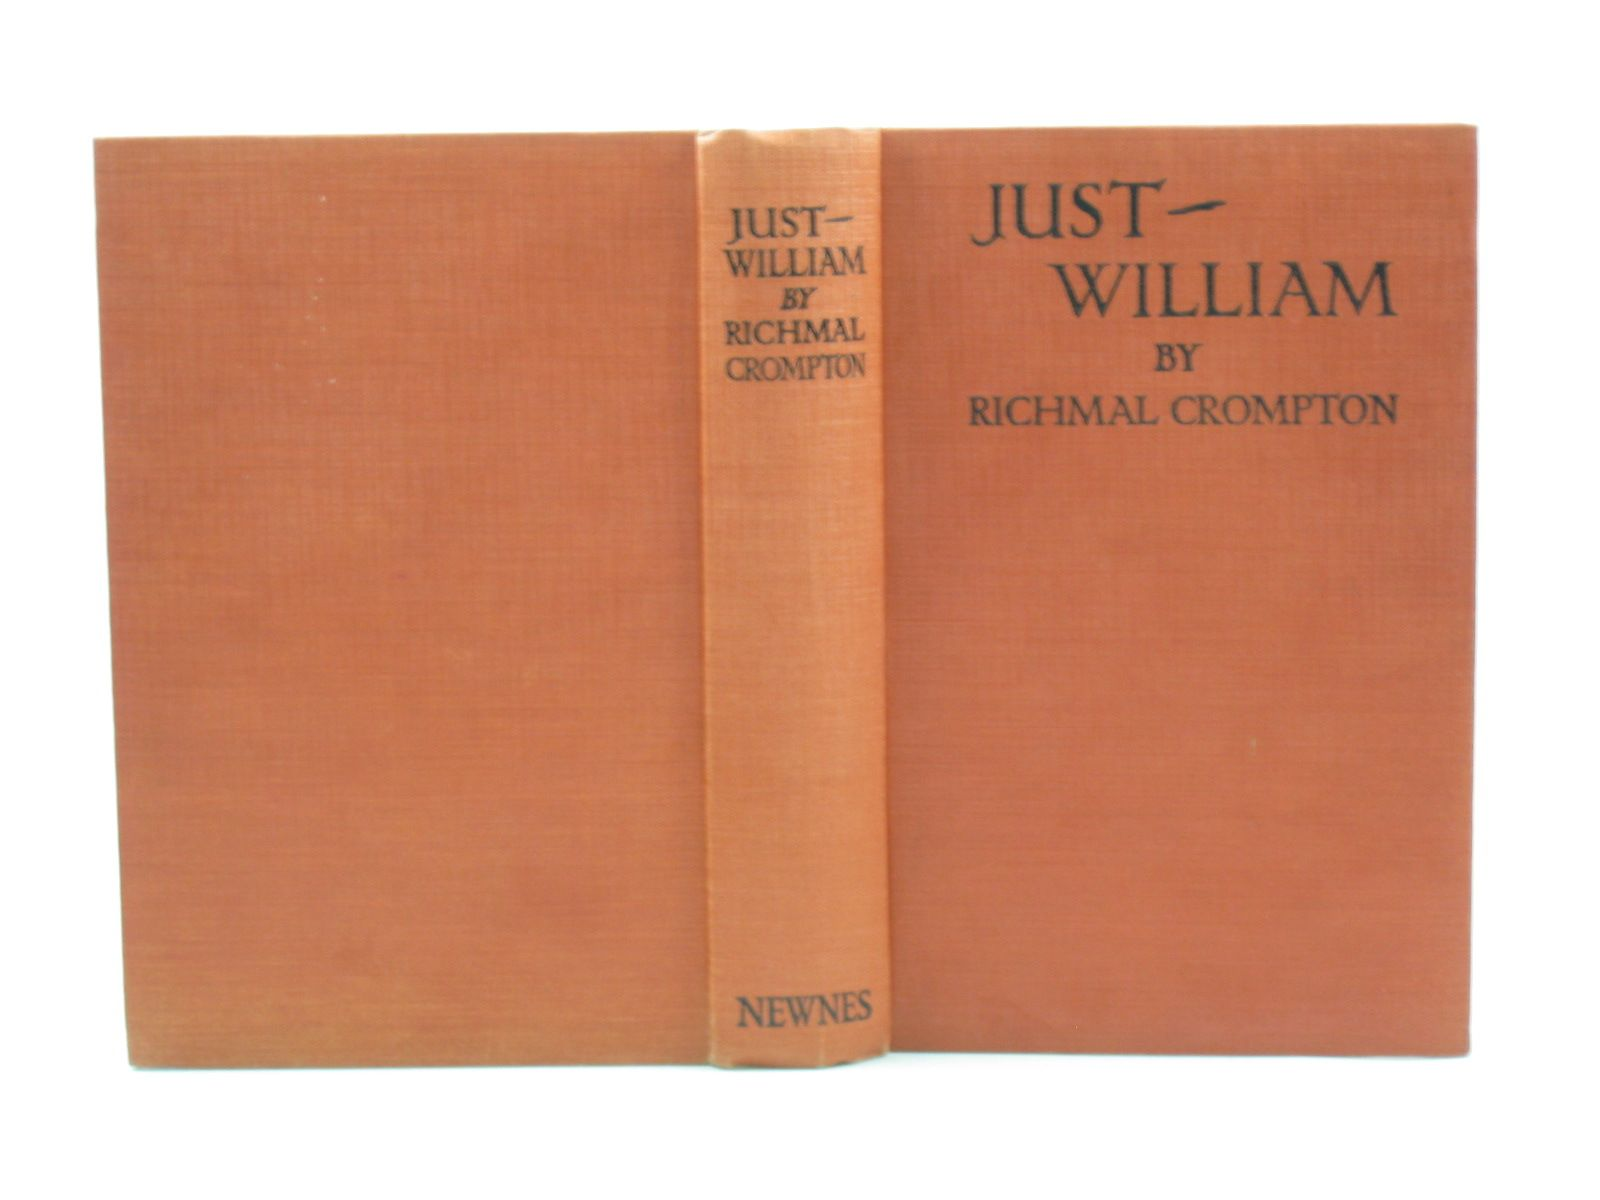 Photo of JUST WILLIAM written by Crompton, Richmal illustrated by Henry, Thomas published by George Newnes Limited (STOCK CODE: 732890)  for sale by Stella & Rose's Books